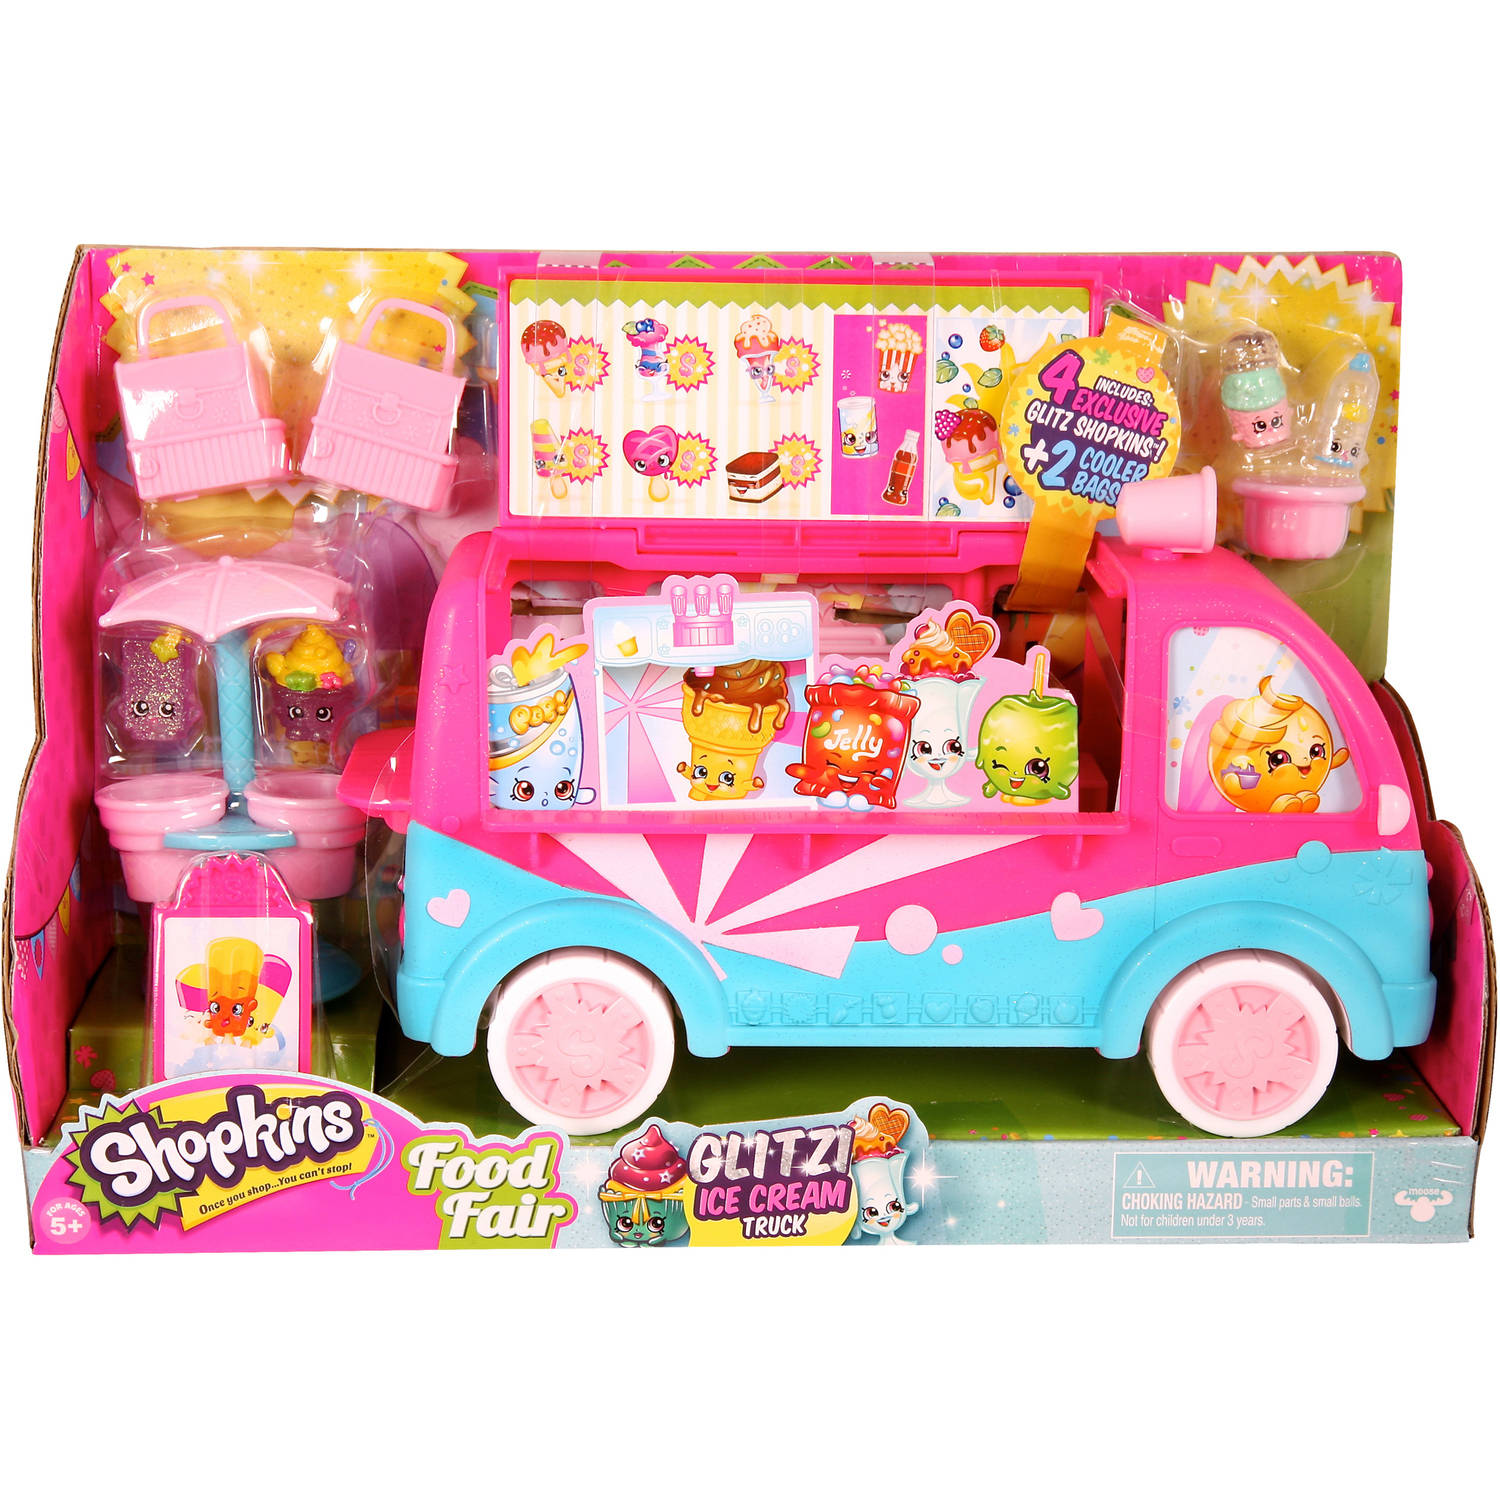 Moose Toys Shopkins Season 3 Scoops Ice Cream Truck Playset, Glitter